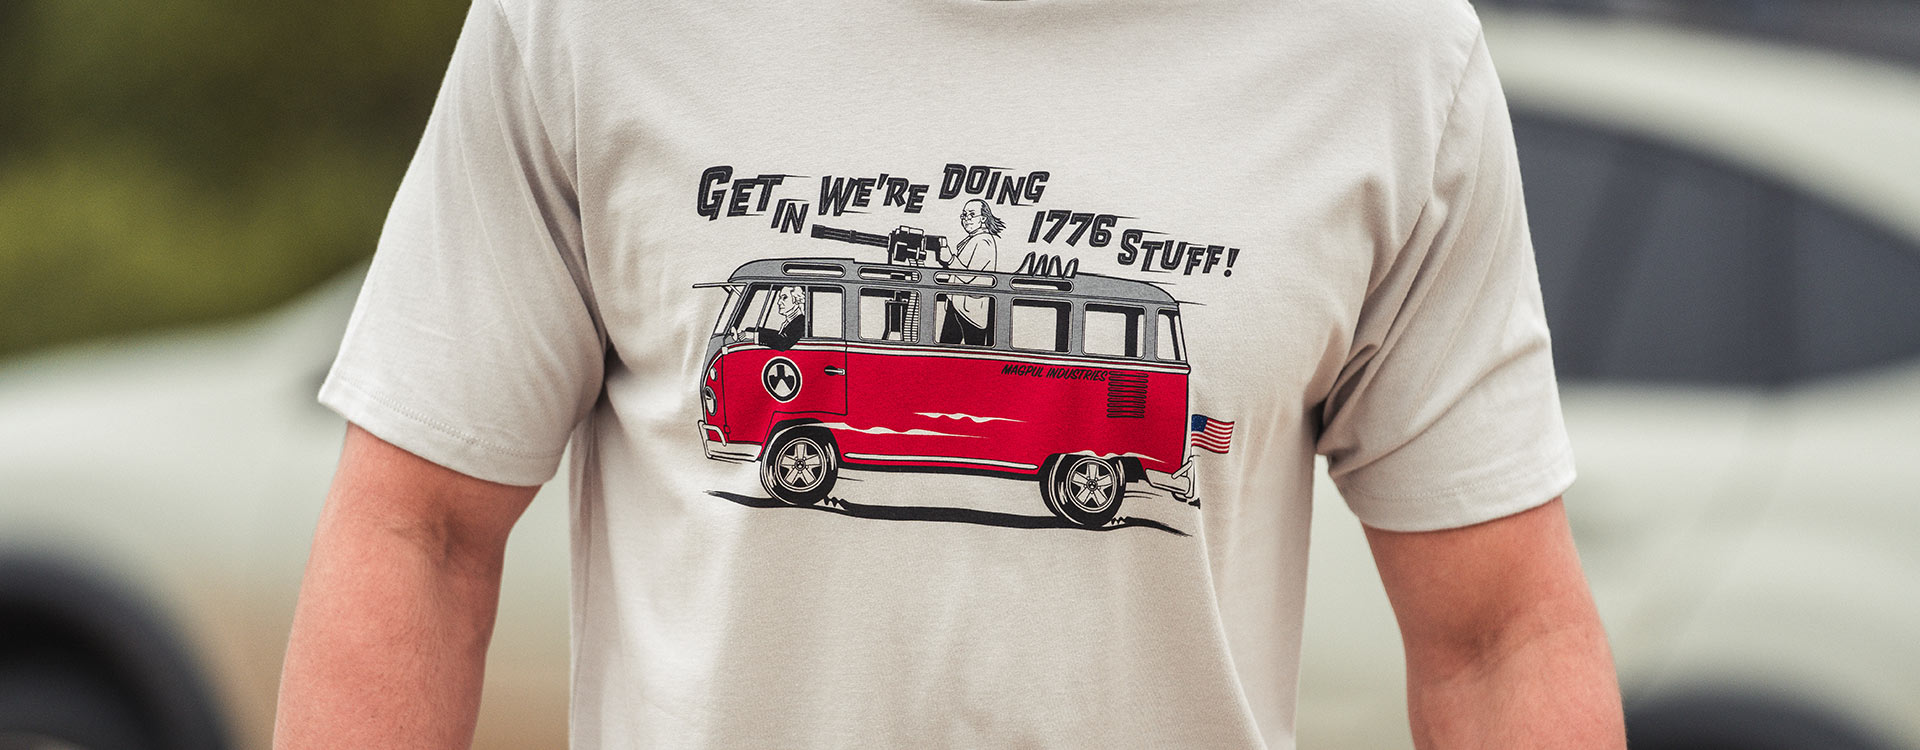 Magpul Freedom Bus Cotton T-Shirt with front graphic worn by nondescript man with white sports car in background